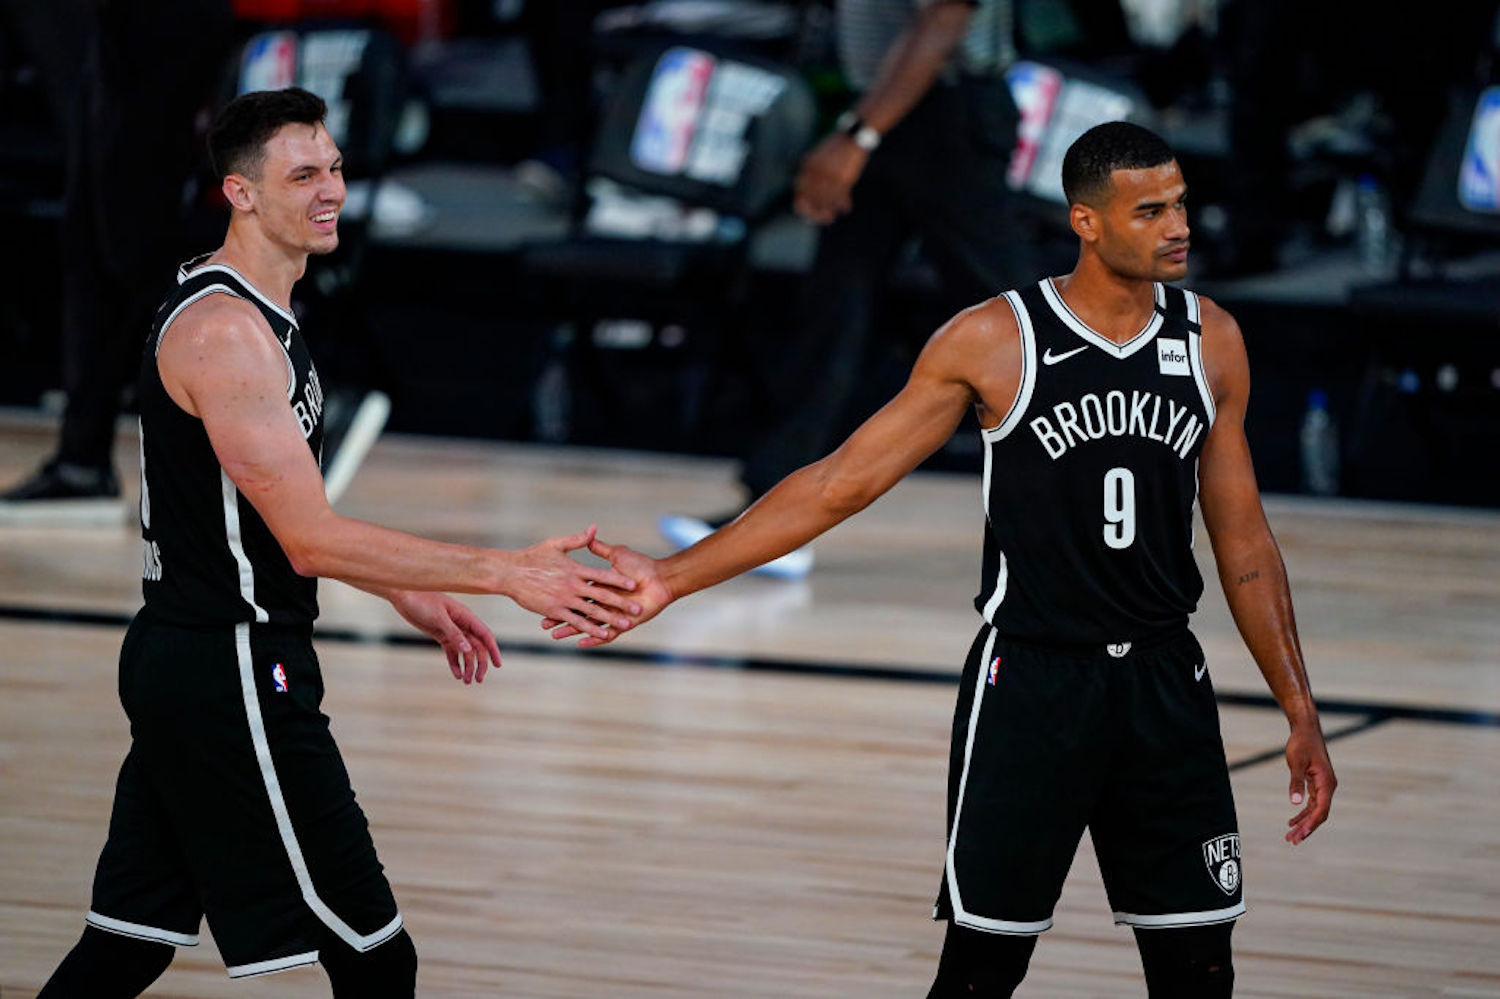 The undermanned Brooklyn Nets beat the Milwaukee Bucks as 18.5-point underdogs Tuesday, and they made NBA history in the process.